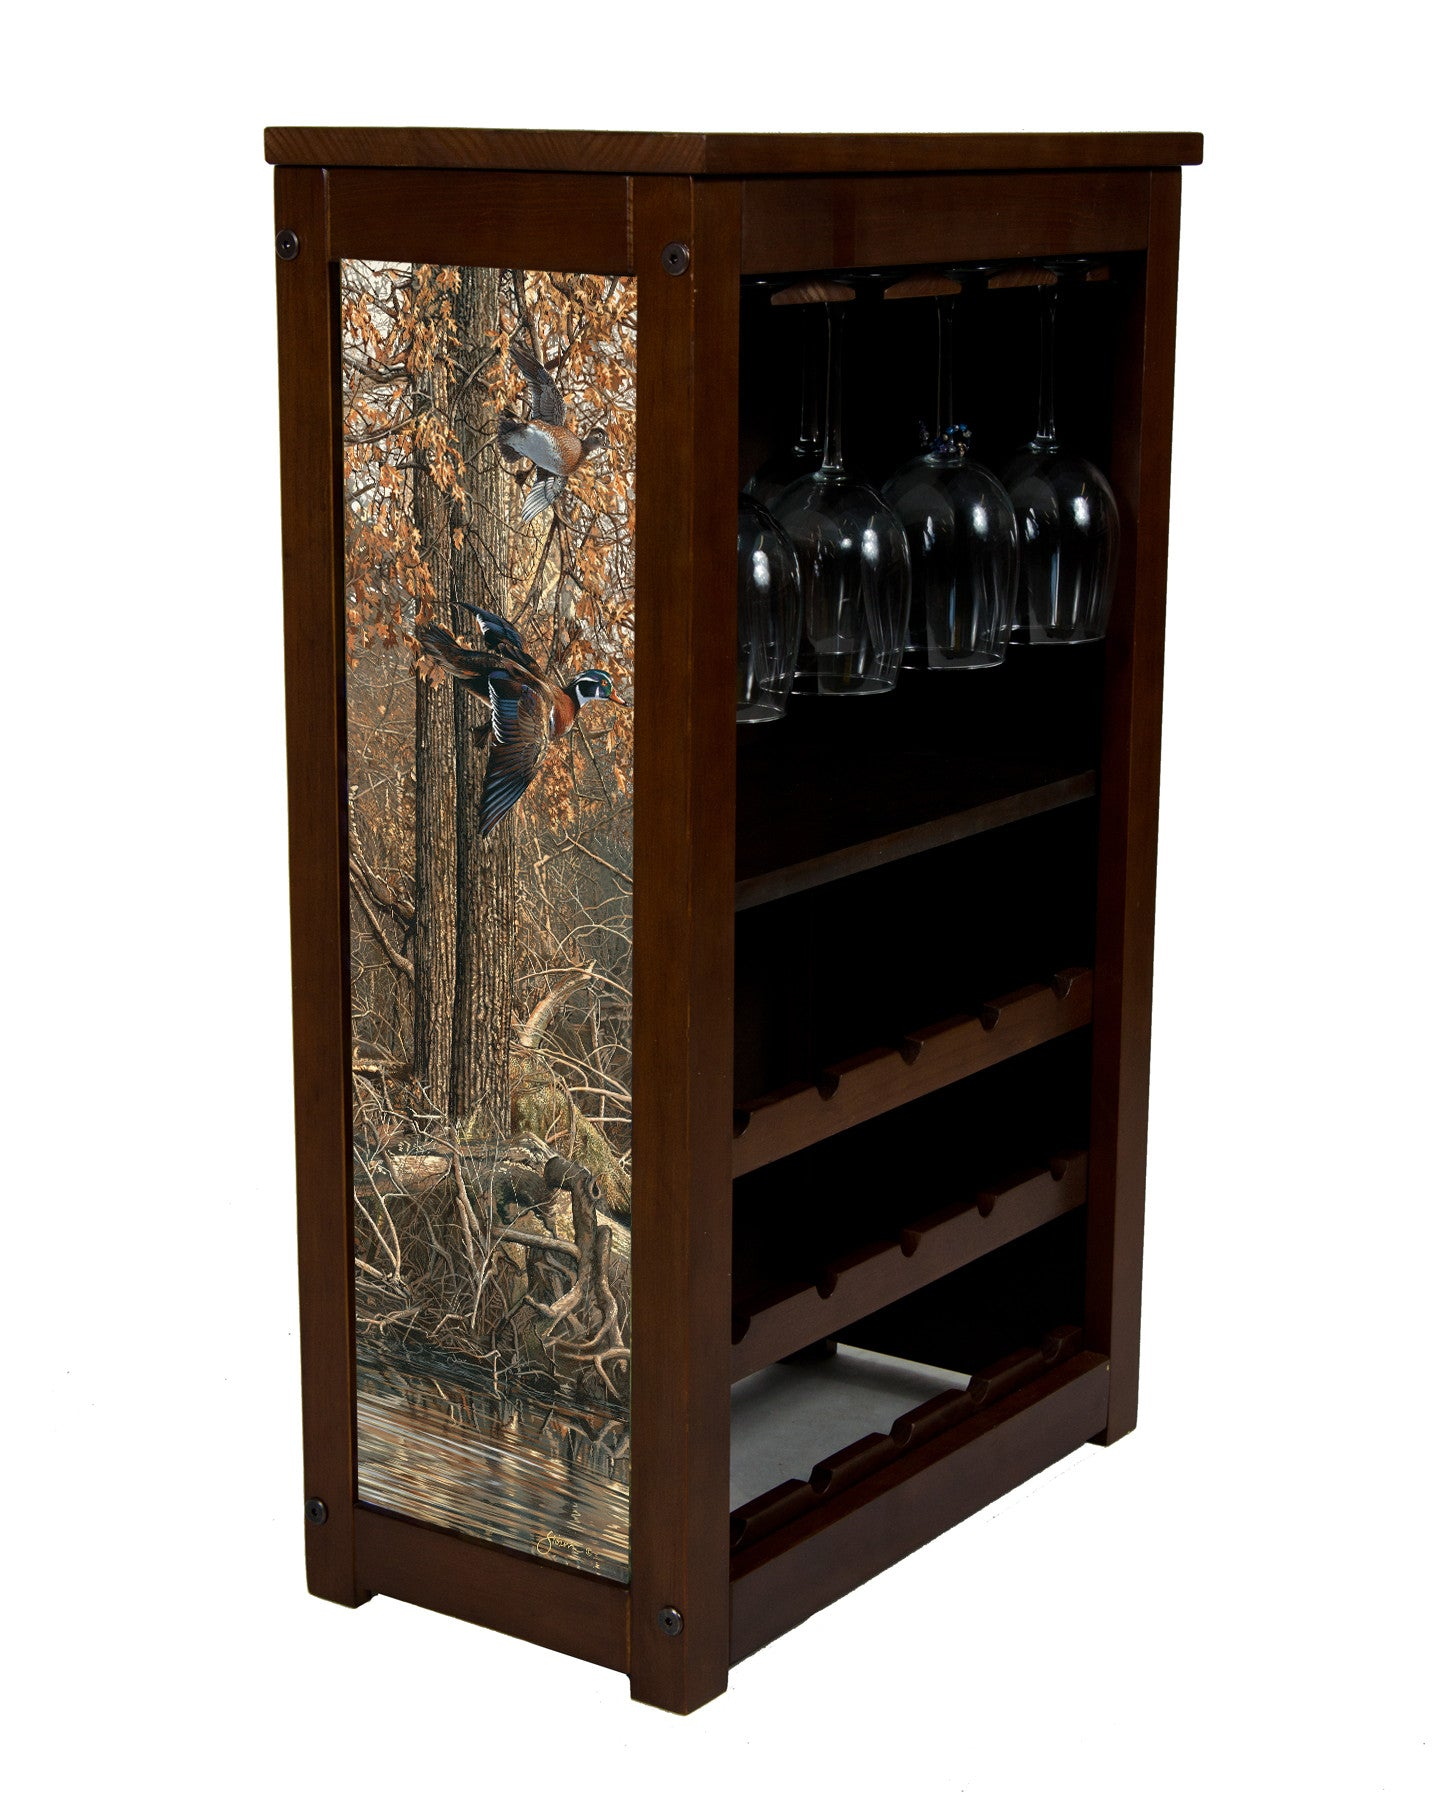 Wood duck wine cabinet with La Grue Woodies